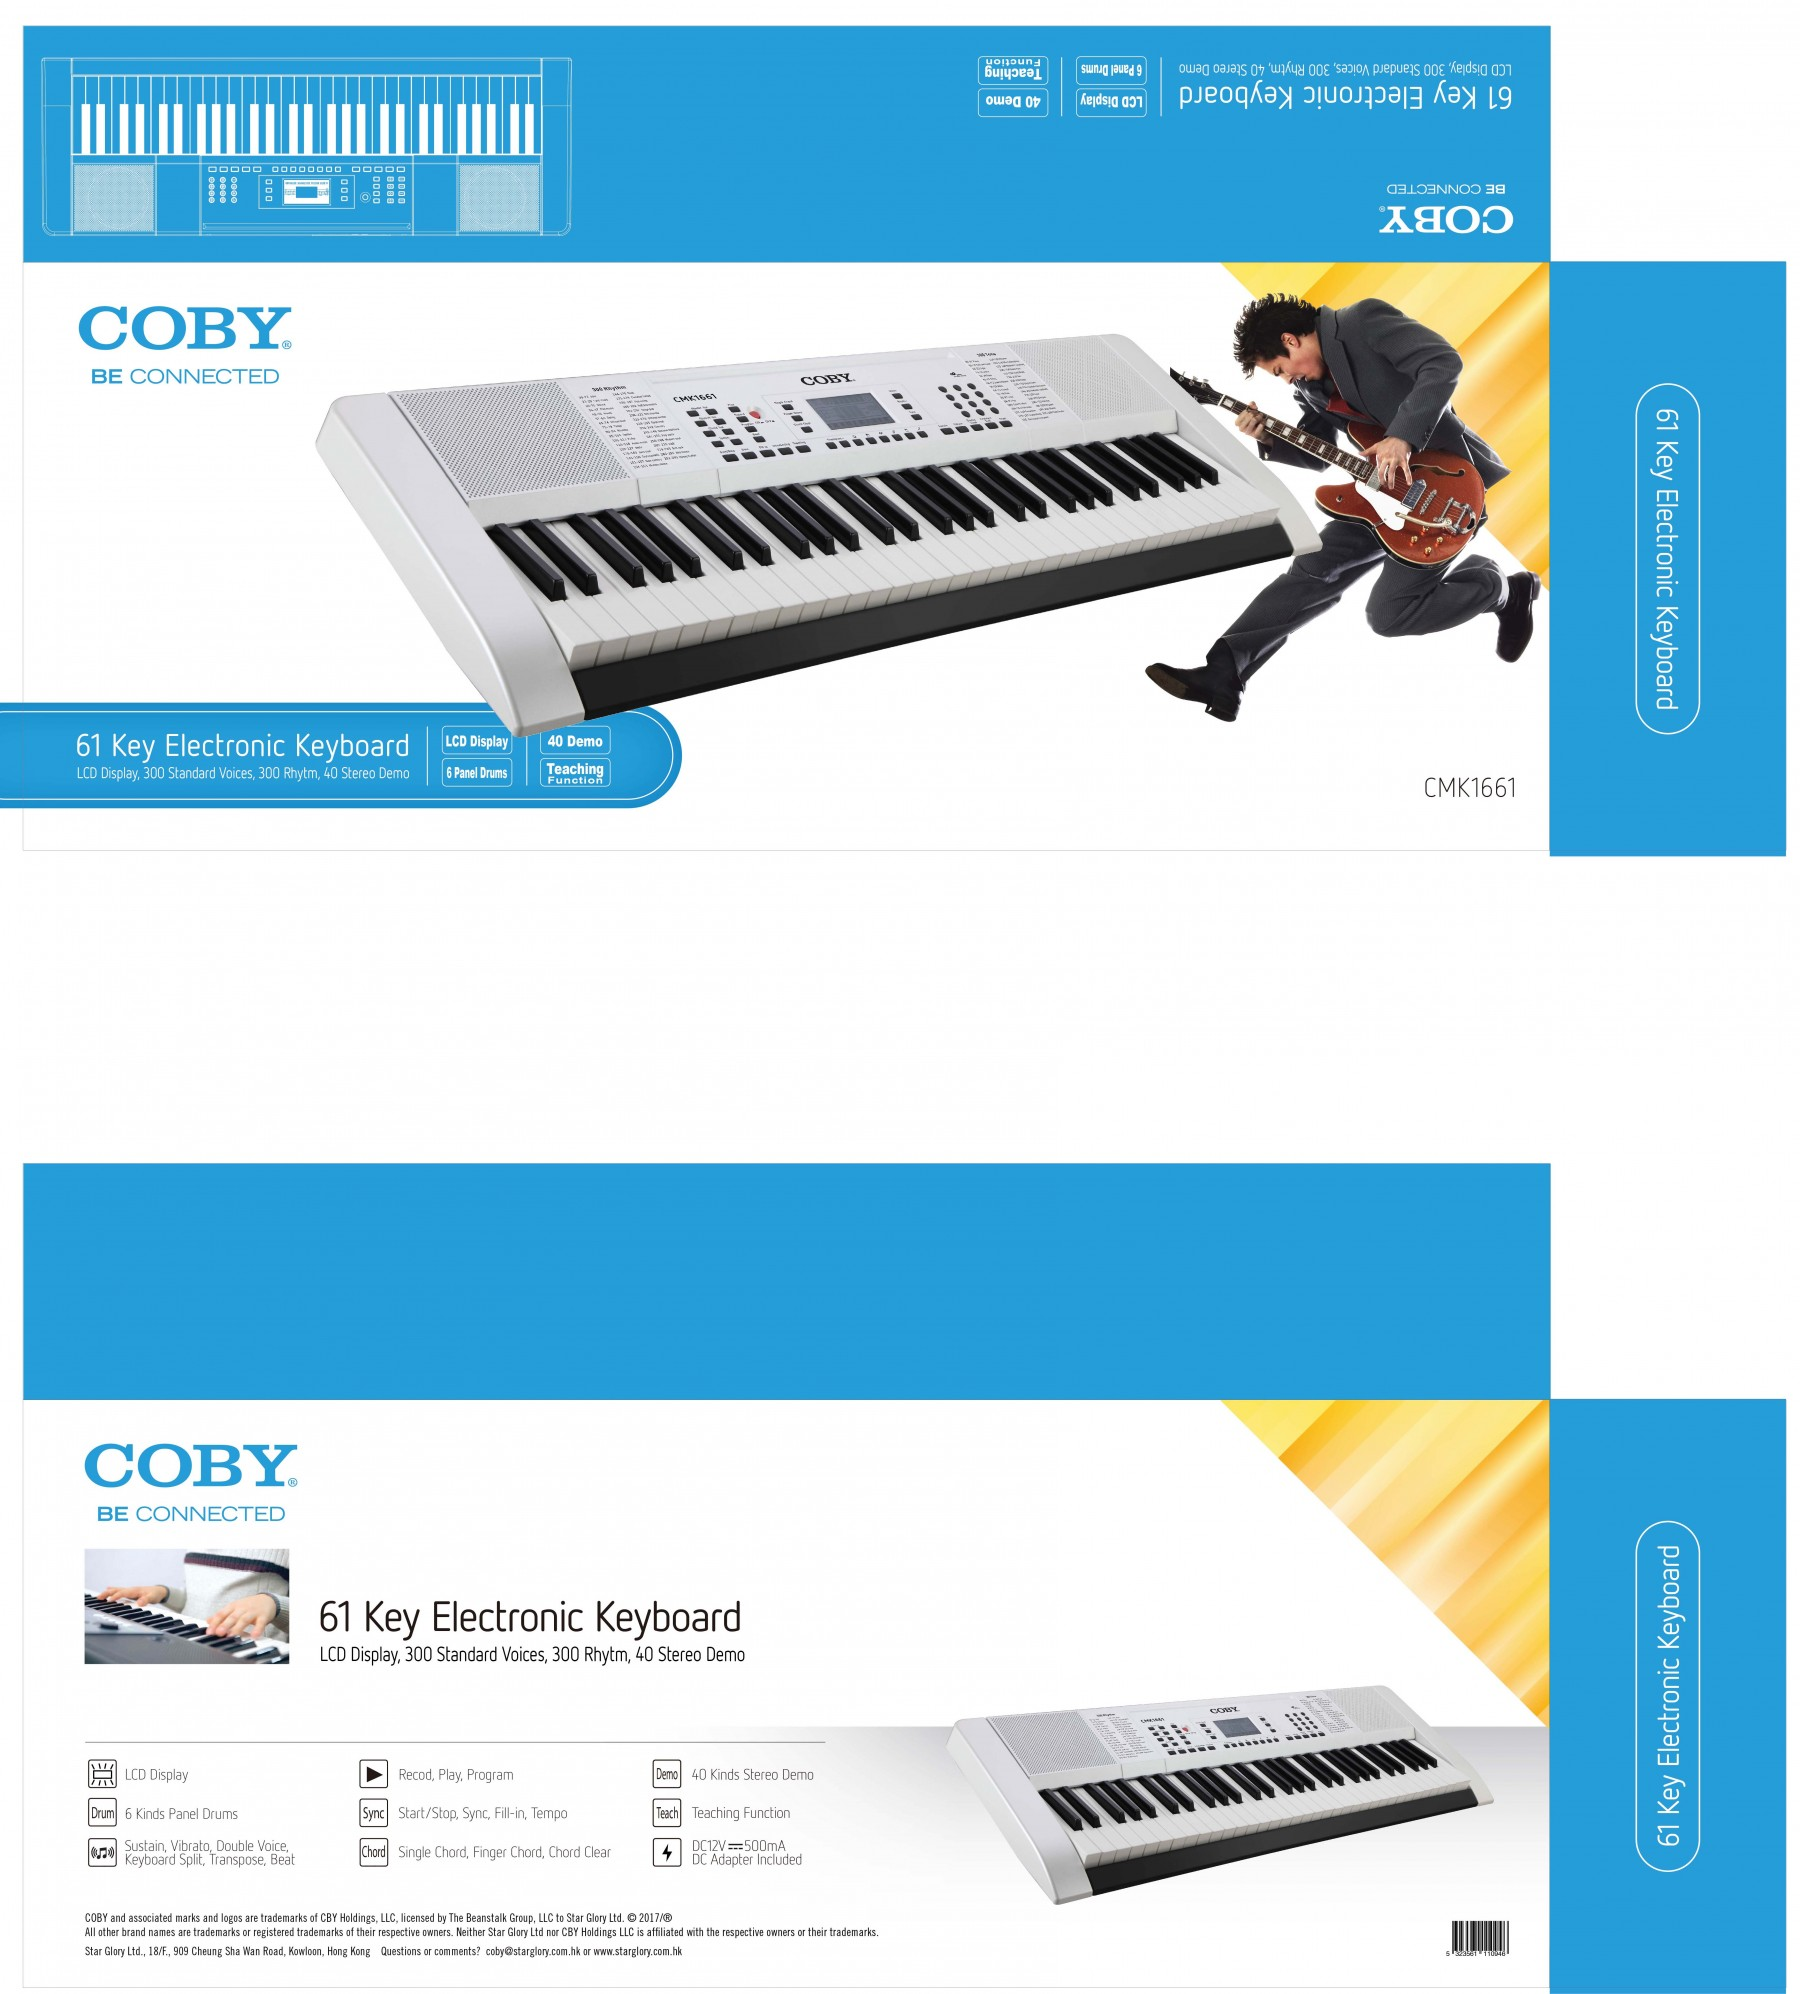 Coby Keyboard Electronic Piano Portable 61 Key - CMK1661 Regular Price:  $111 Special Price: $92 17% off - + Buy Now